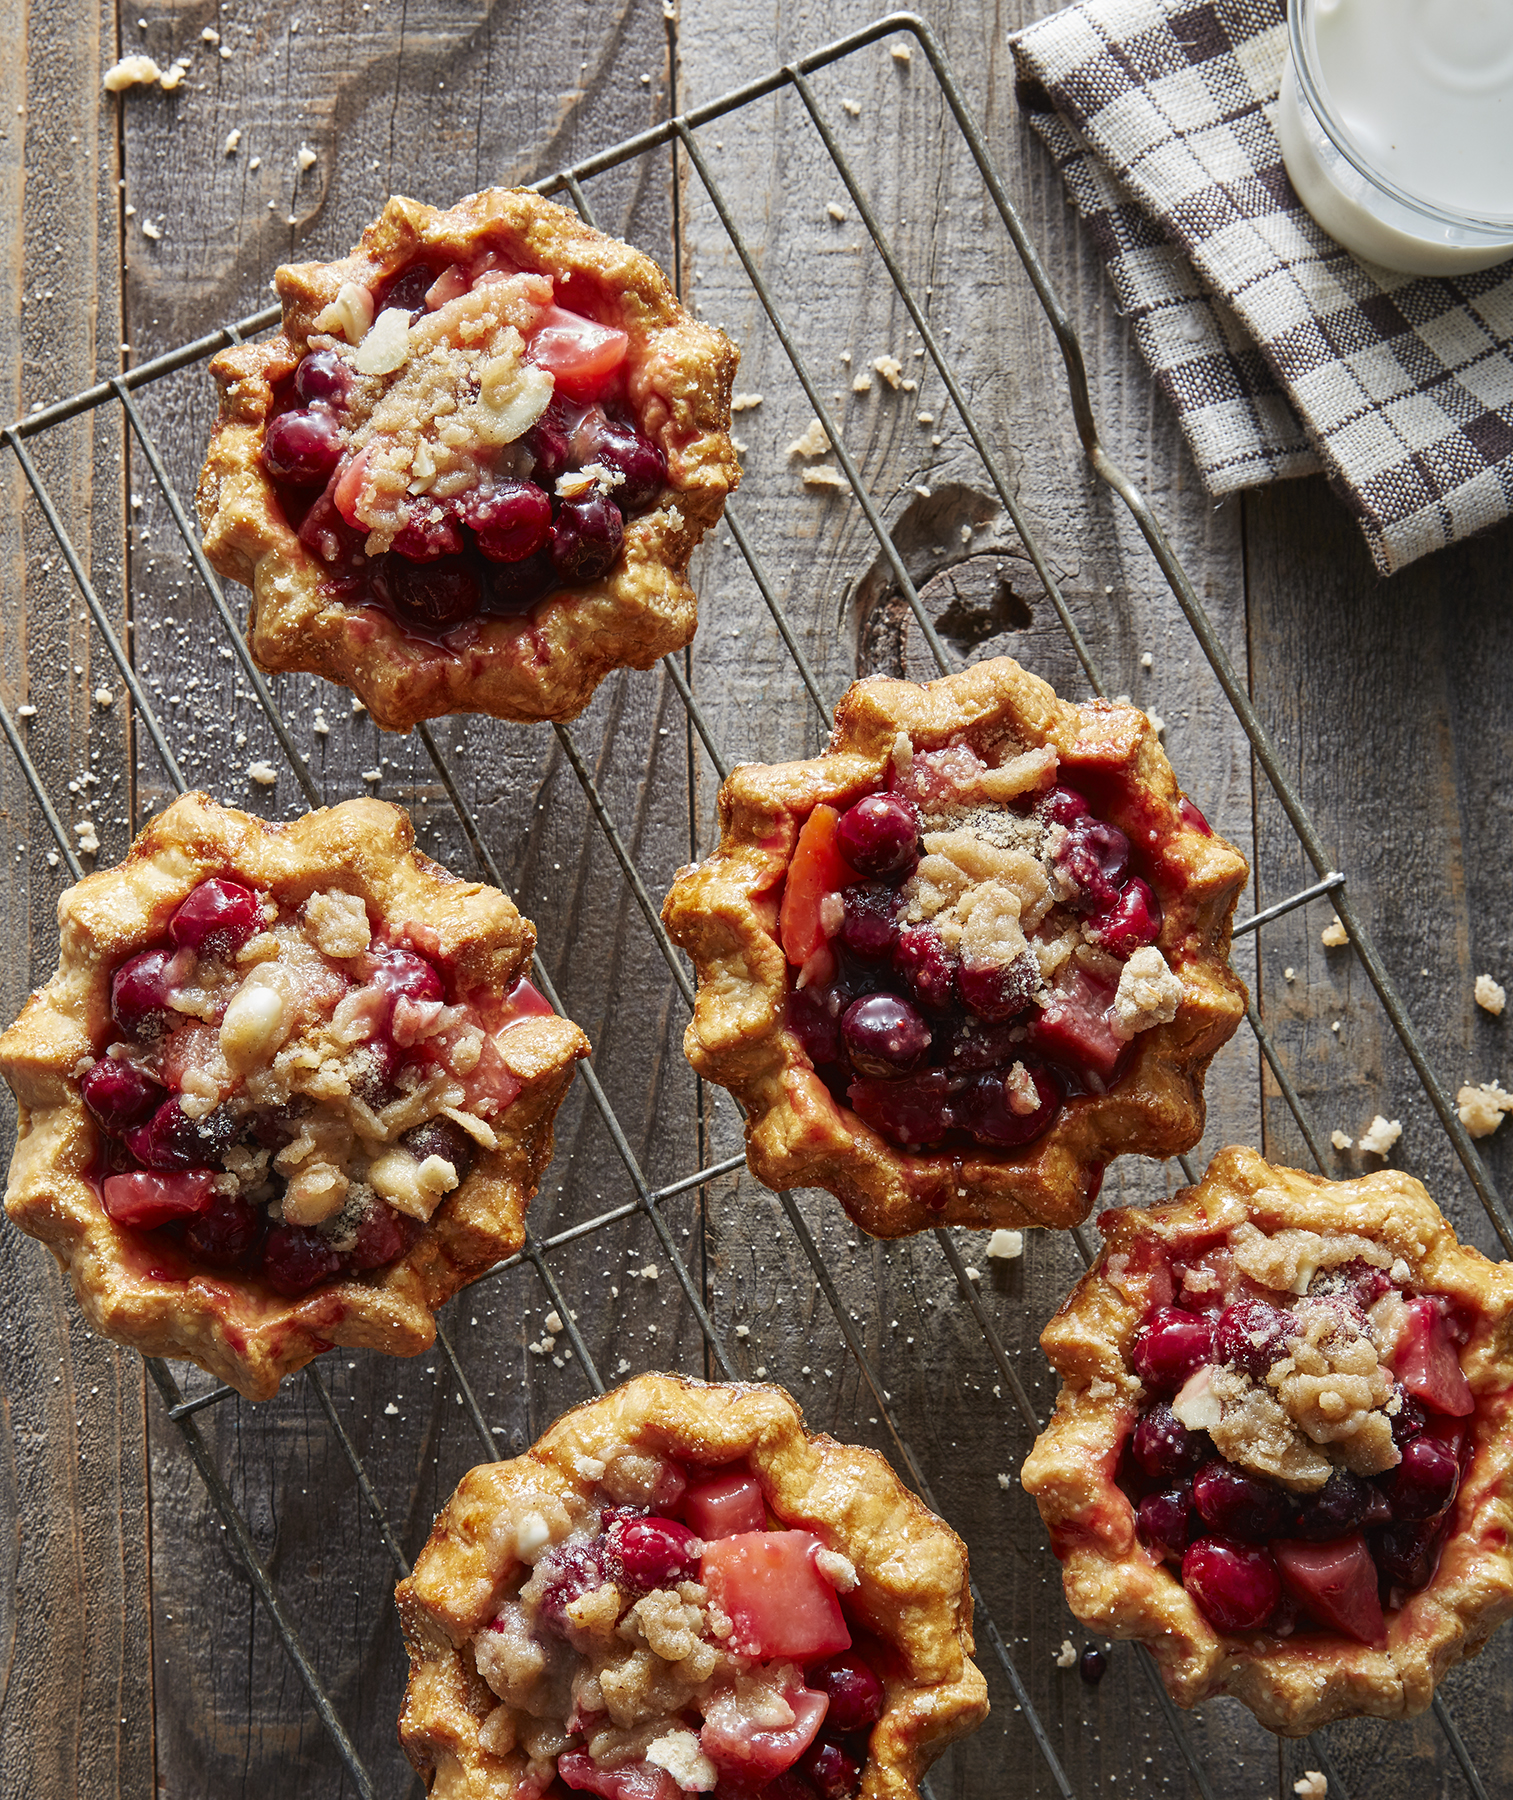 Cranberry-Plum Mini Pies With Crumble Topping